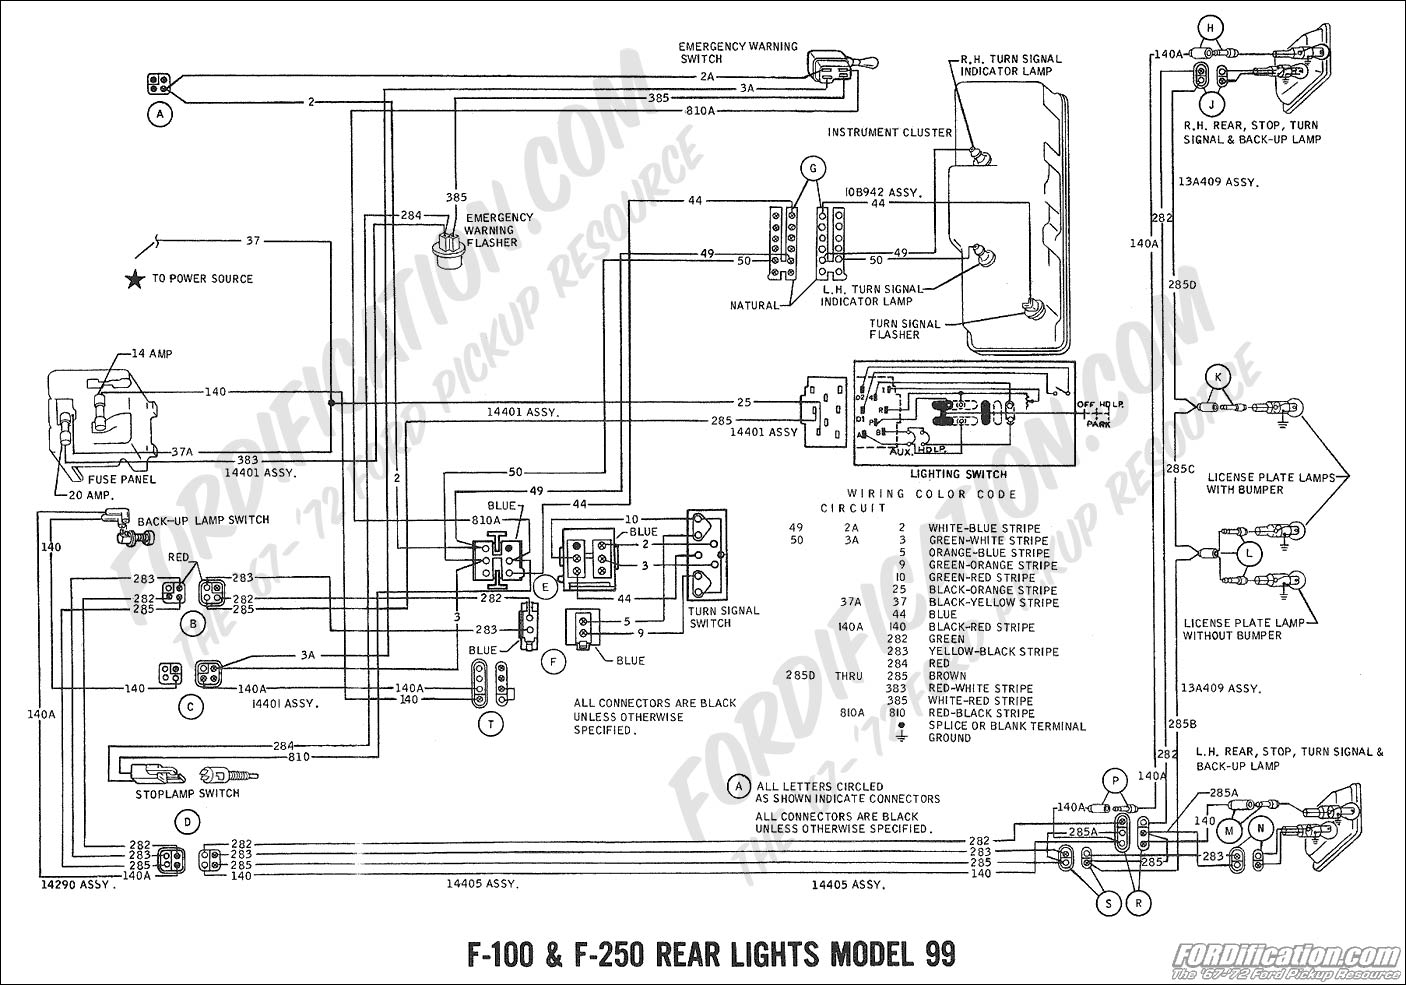 Chevrolet Heater Blower Motor Wiring Diagram